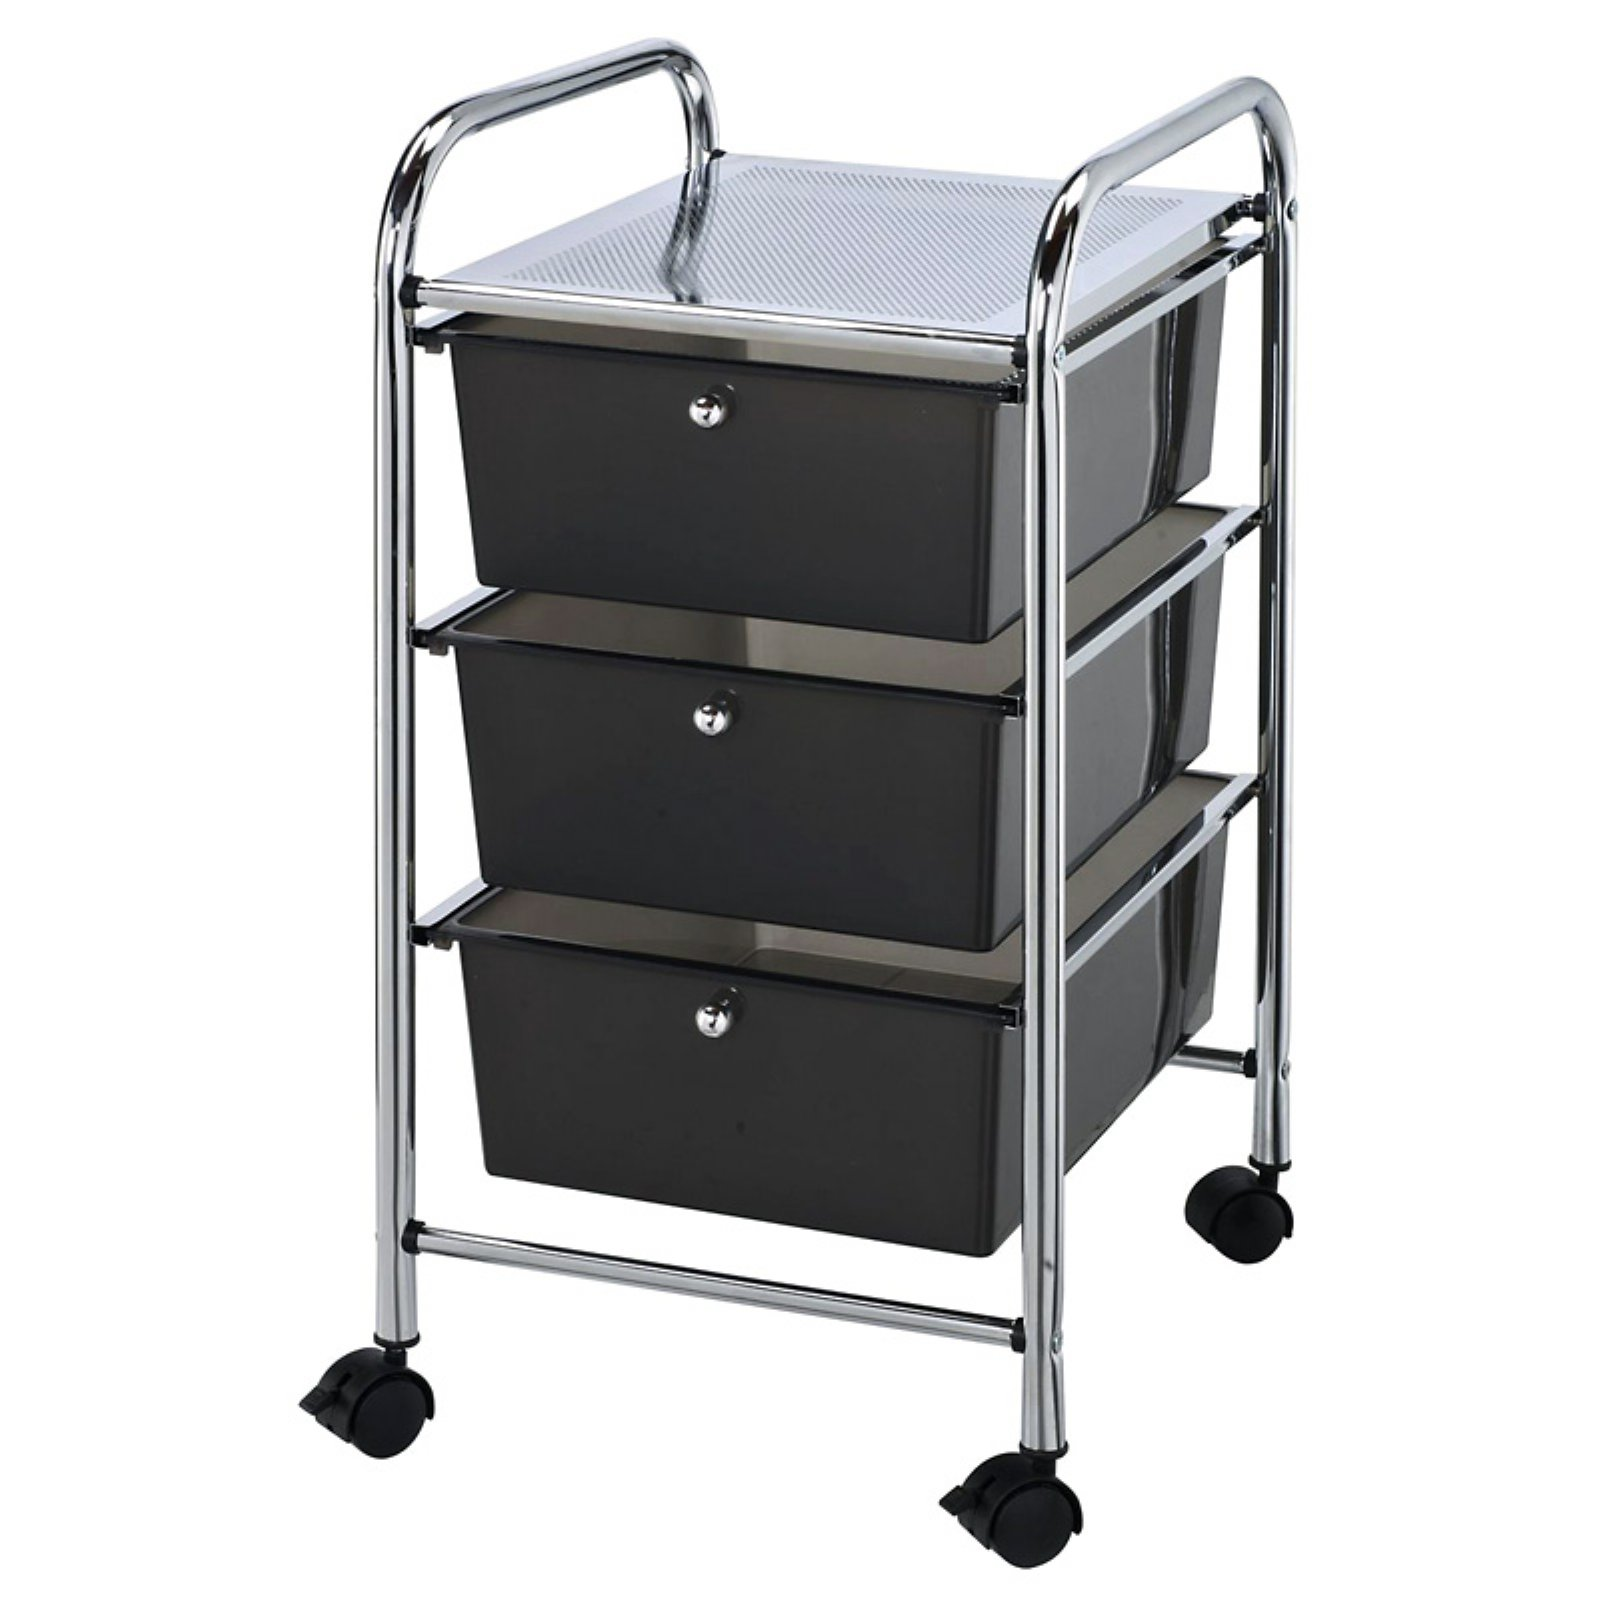 "Blue Hills Studio Storage Cart with 3 Drawers 13""x26""x15.5"", Smoke"